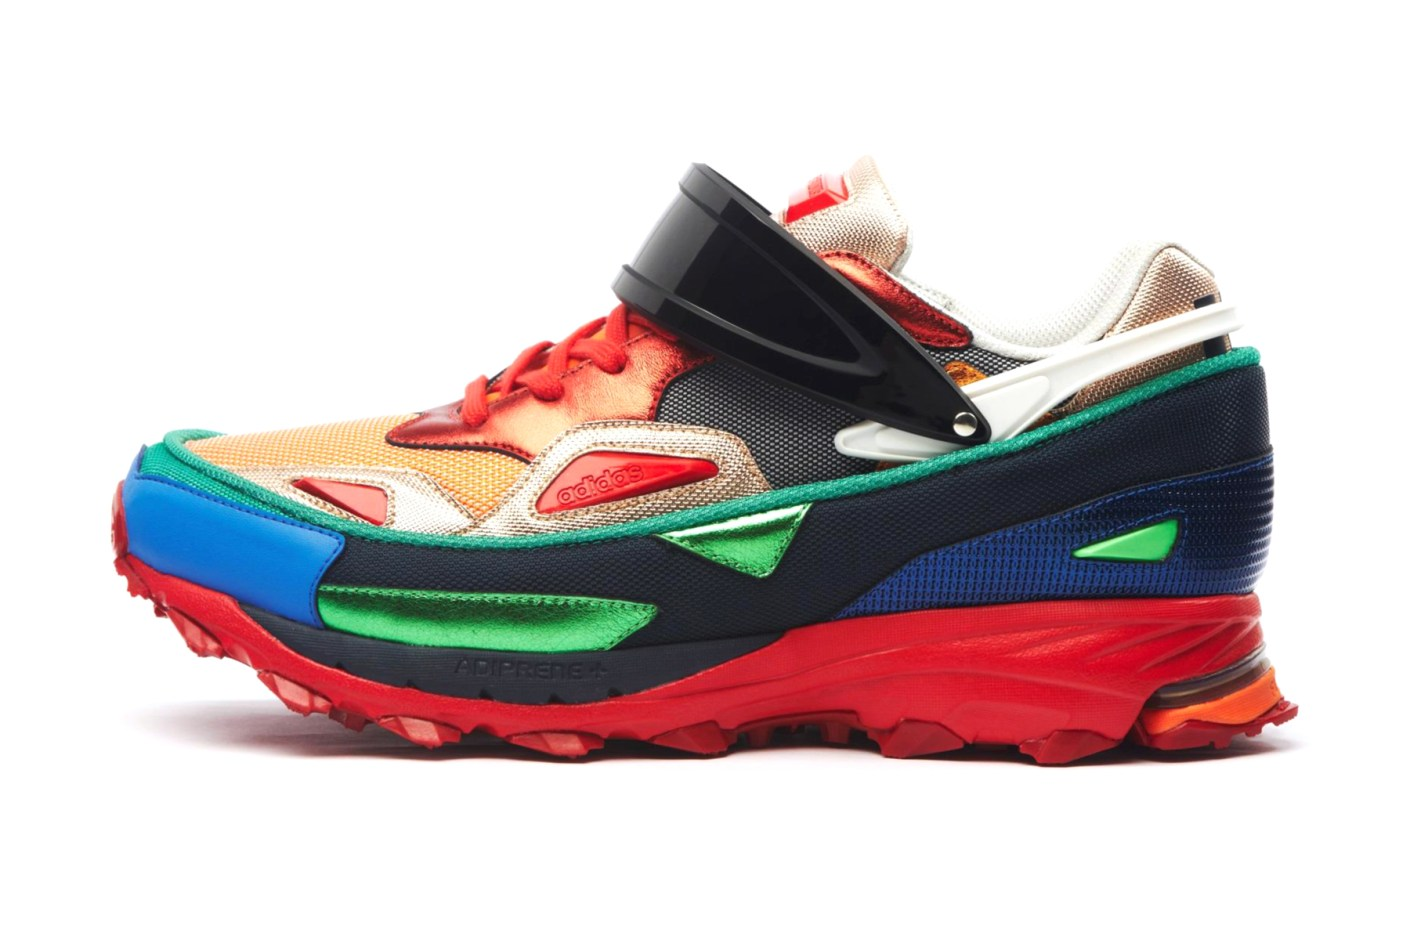 Image of Raf Simons for adidas 2014 Fall/Winter Collection